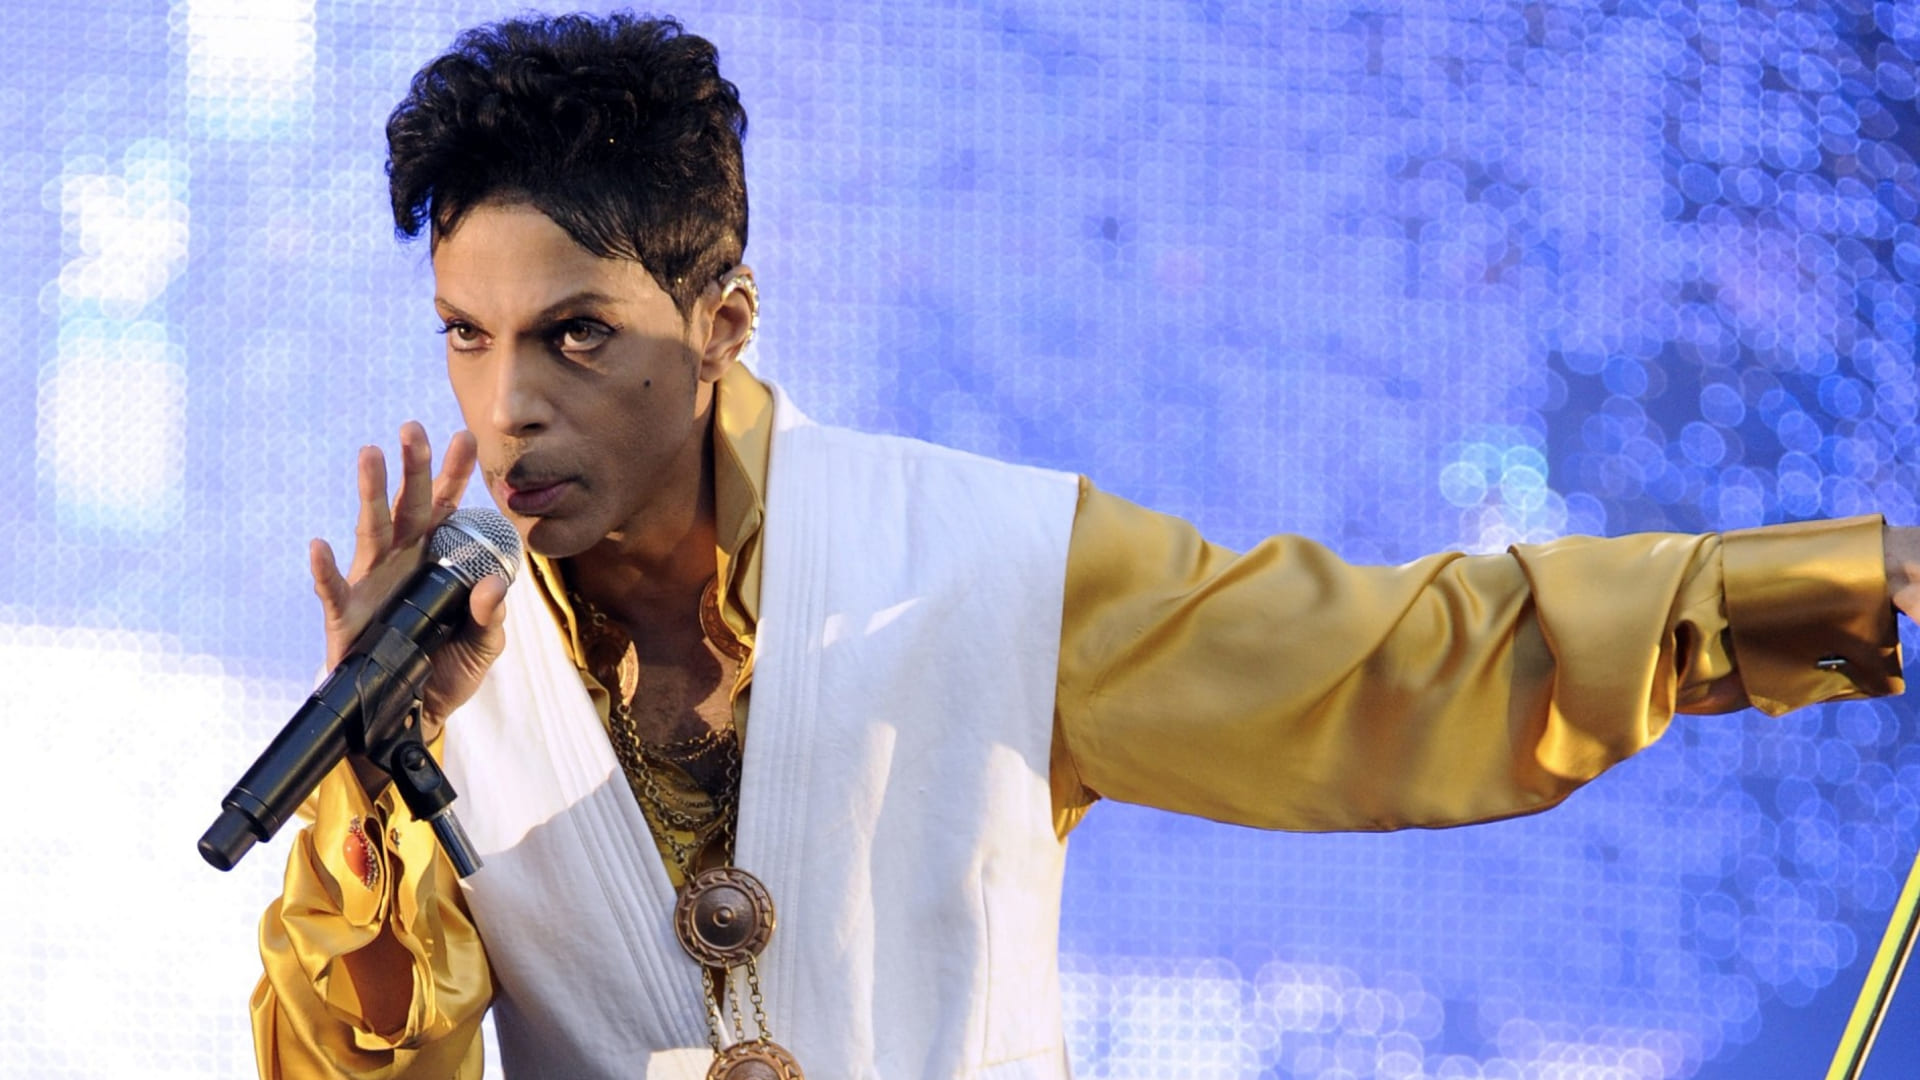 Prince images